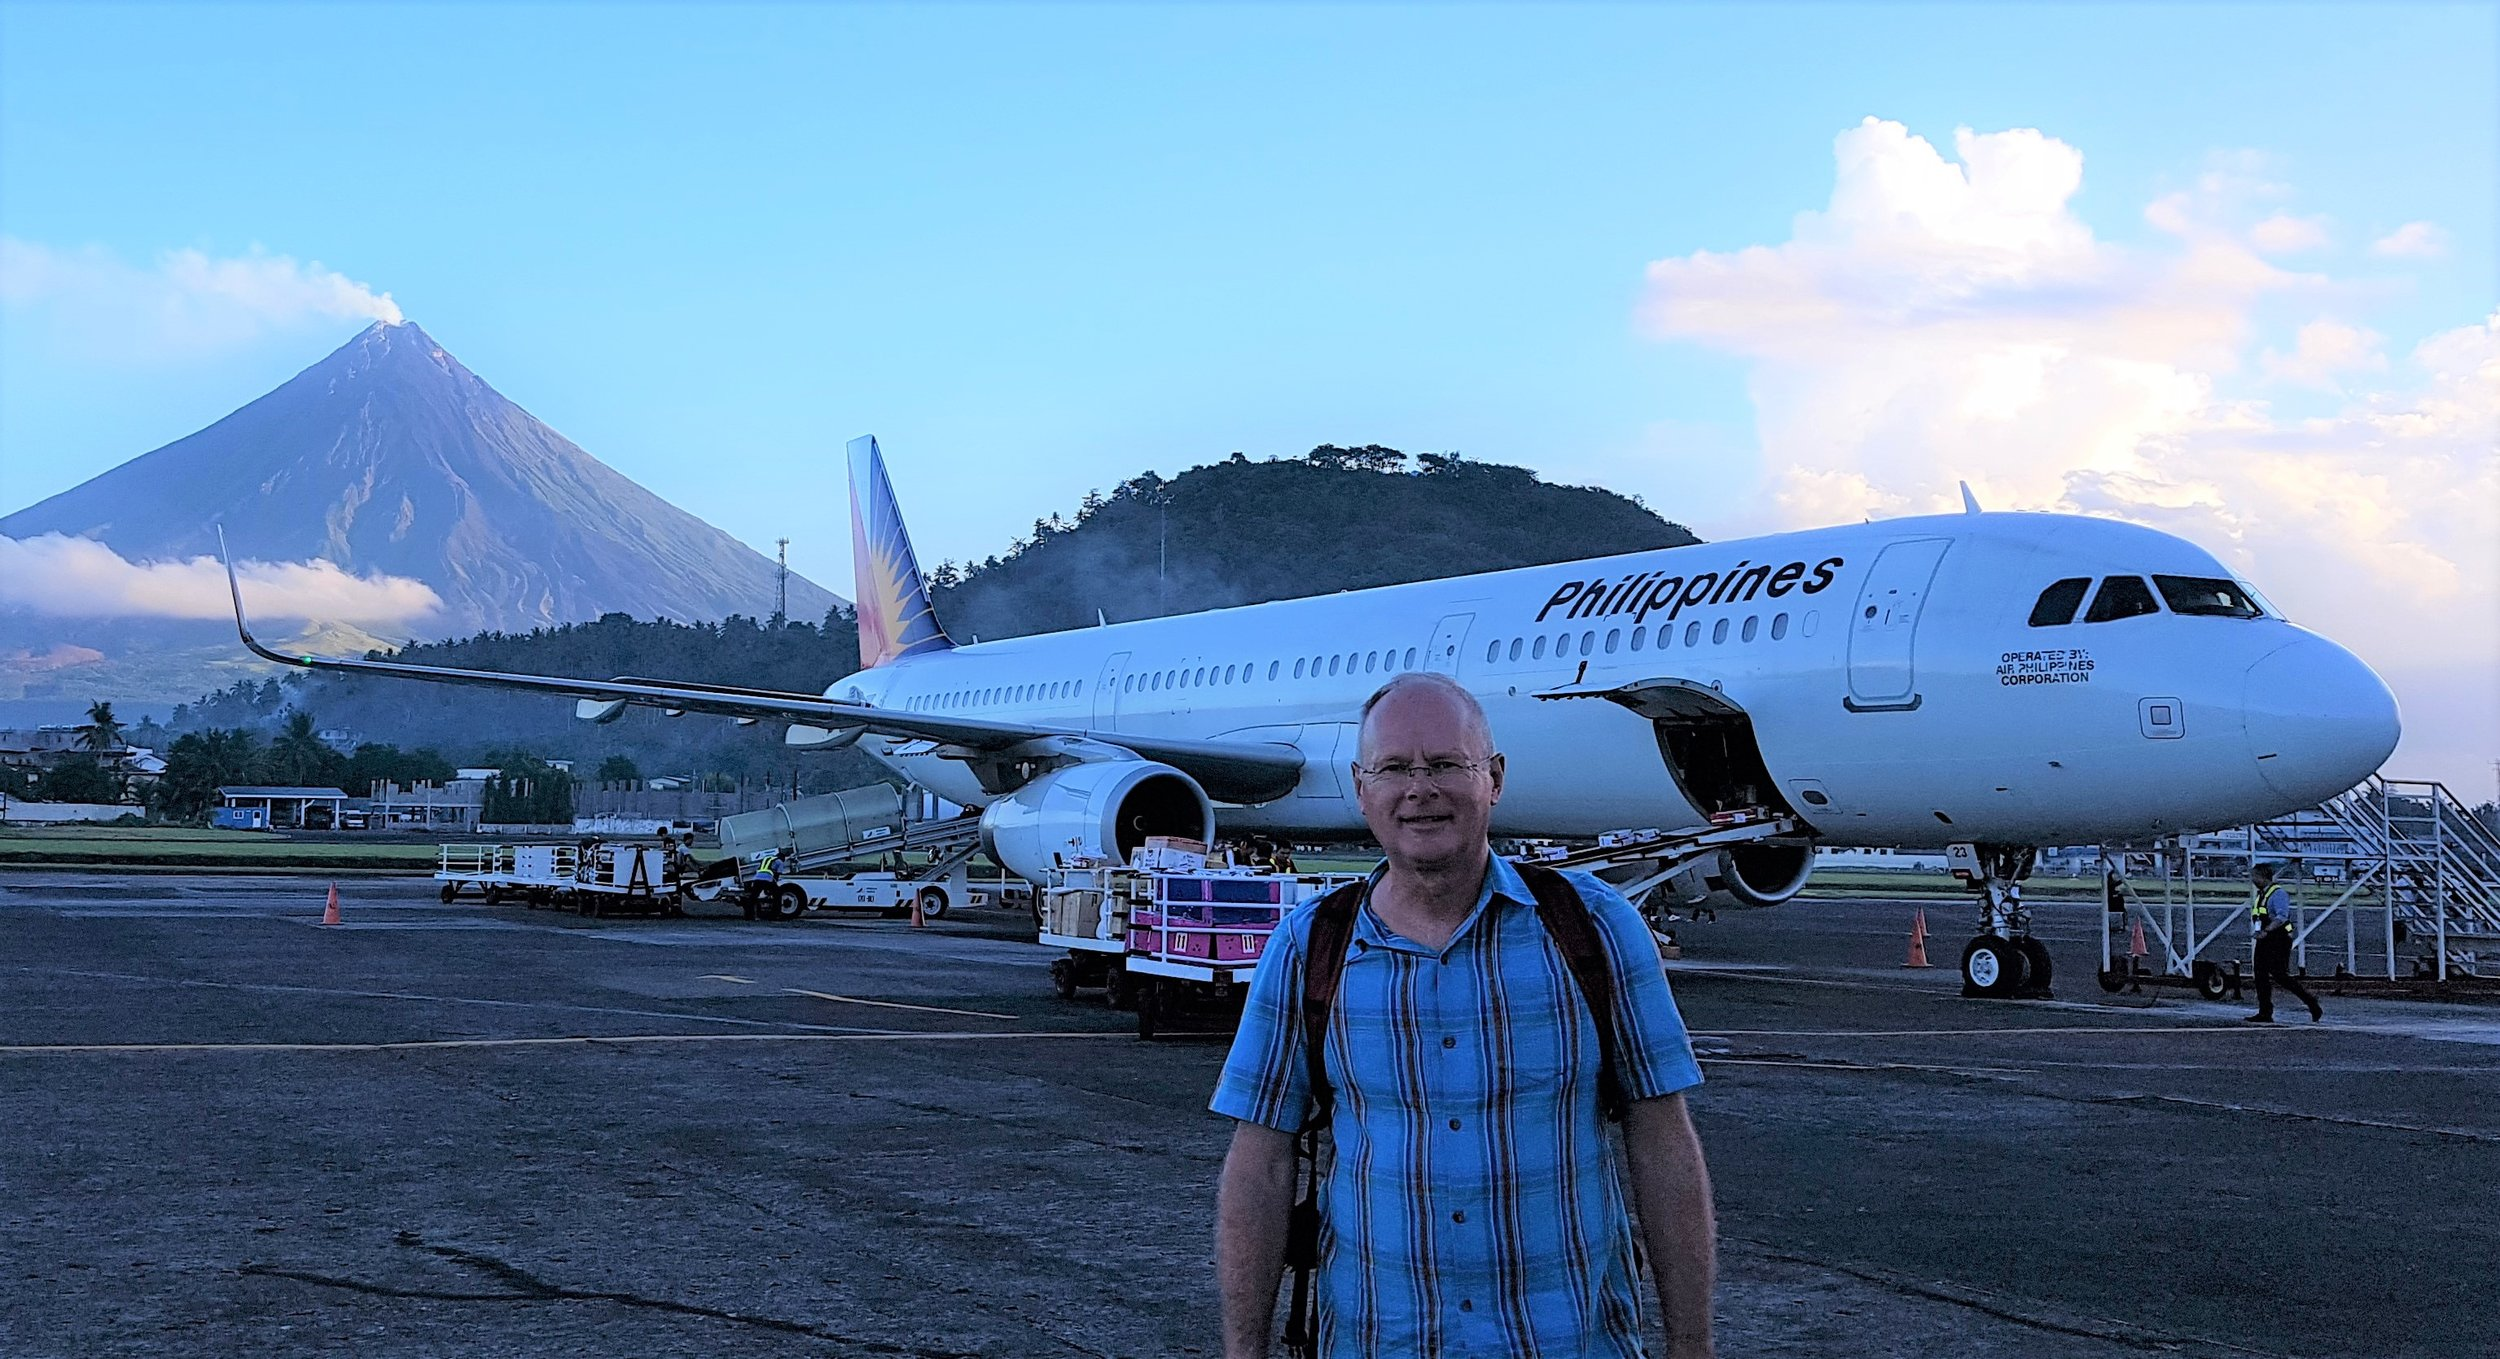 Legazpy airport with the Mayon volcano in the background